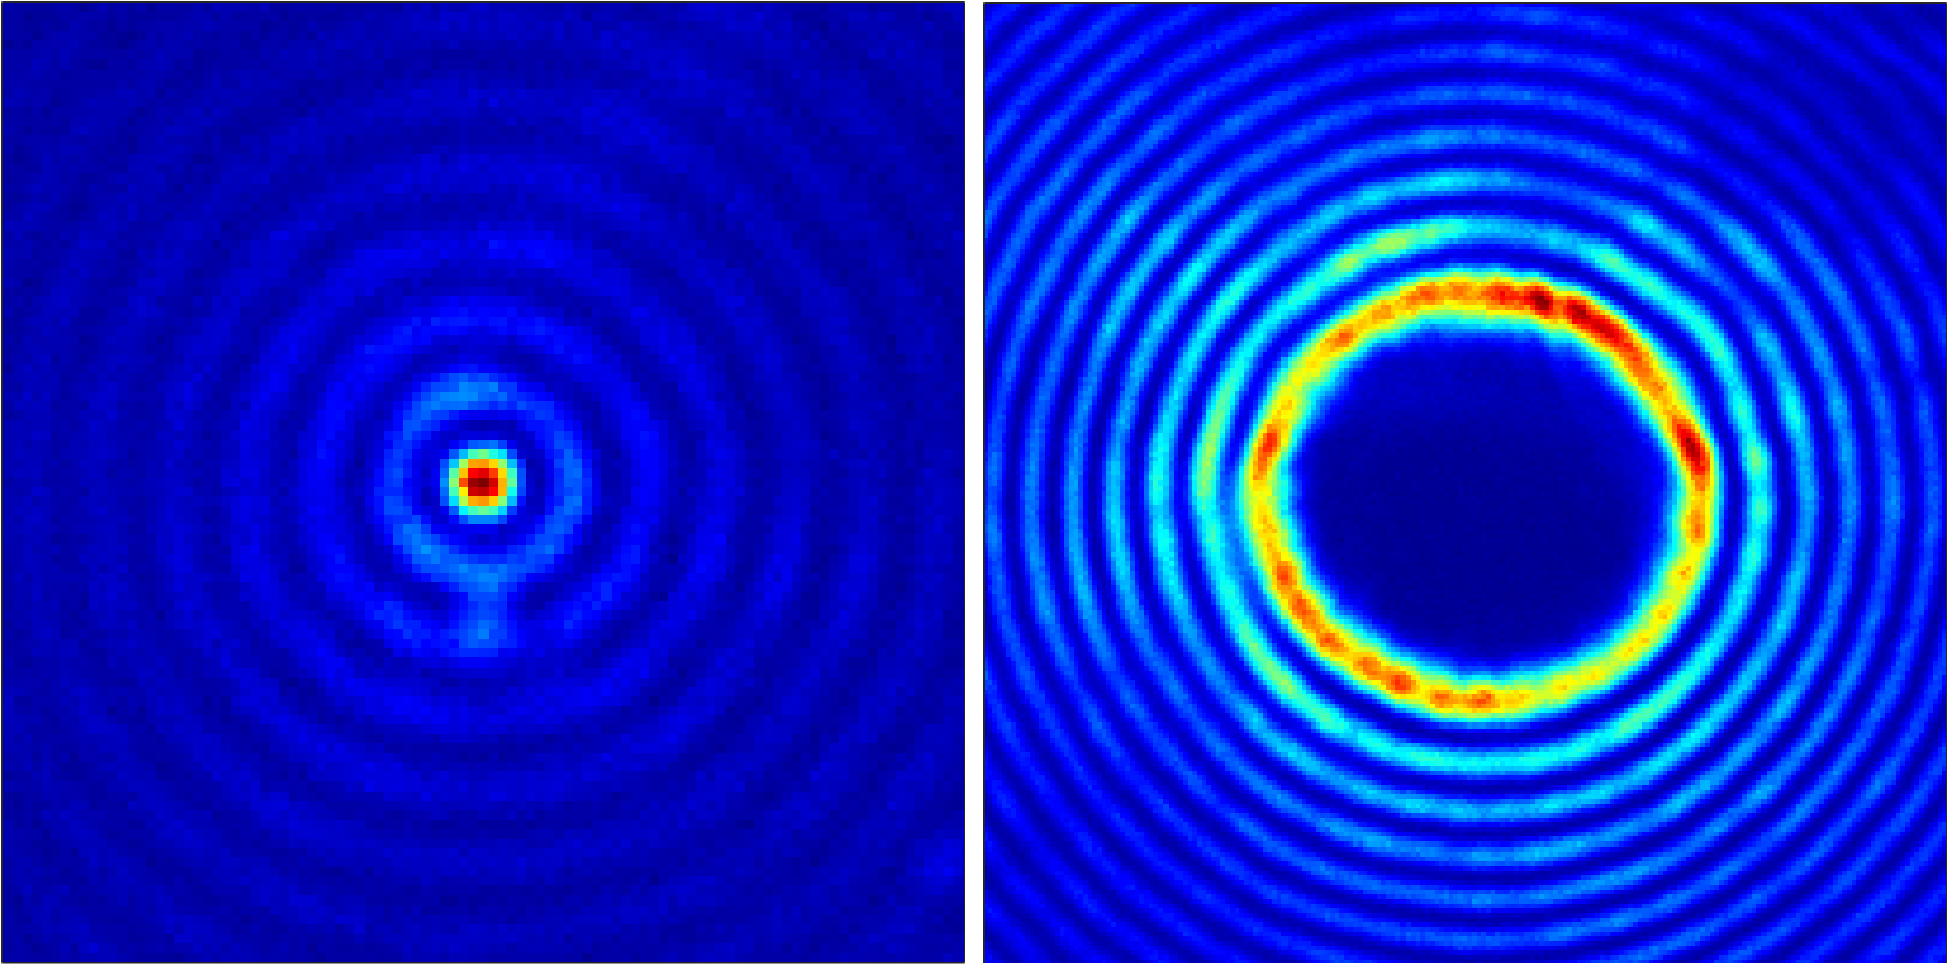 Caption: On the left is a cross section of the intensity of the Bessel beam responsible for creating the low-density plasma core. On the right is a cross section of the intensity of the Bessel beam that creates the high-density plasma wall. The left image is 50 micrometers across and the right image is 100 micrometers across. (Credit: Intense Laser-Matter Interactions Lab, University of Maryland)